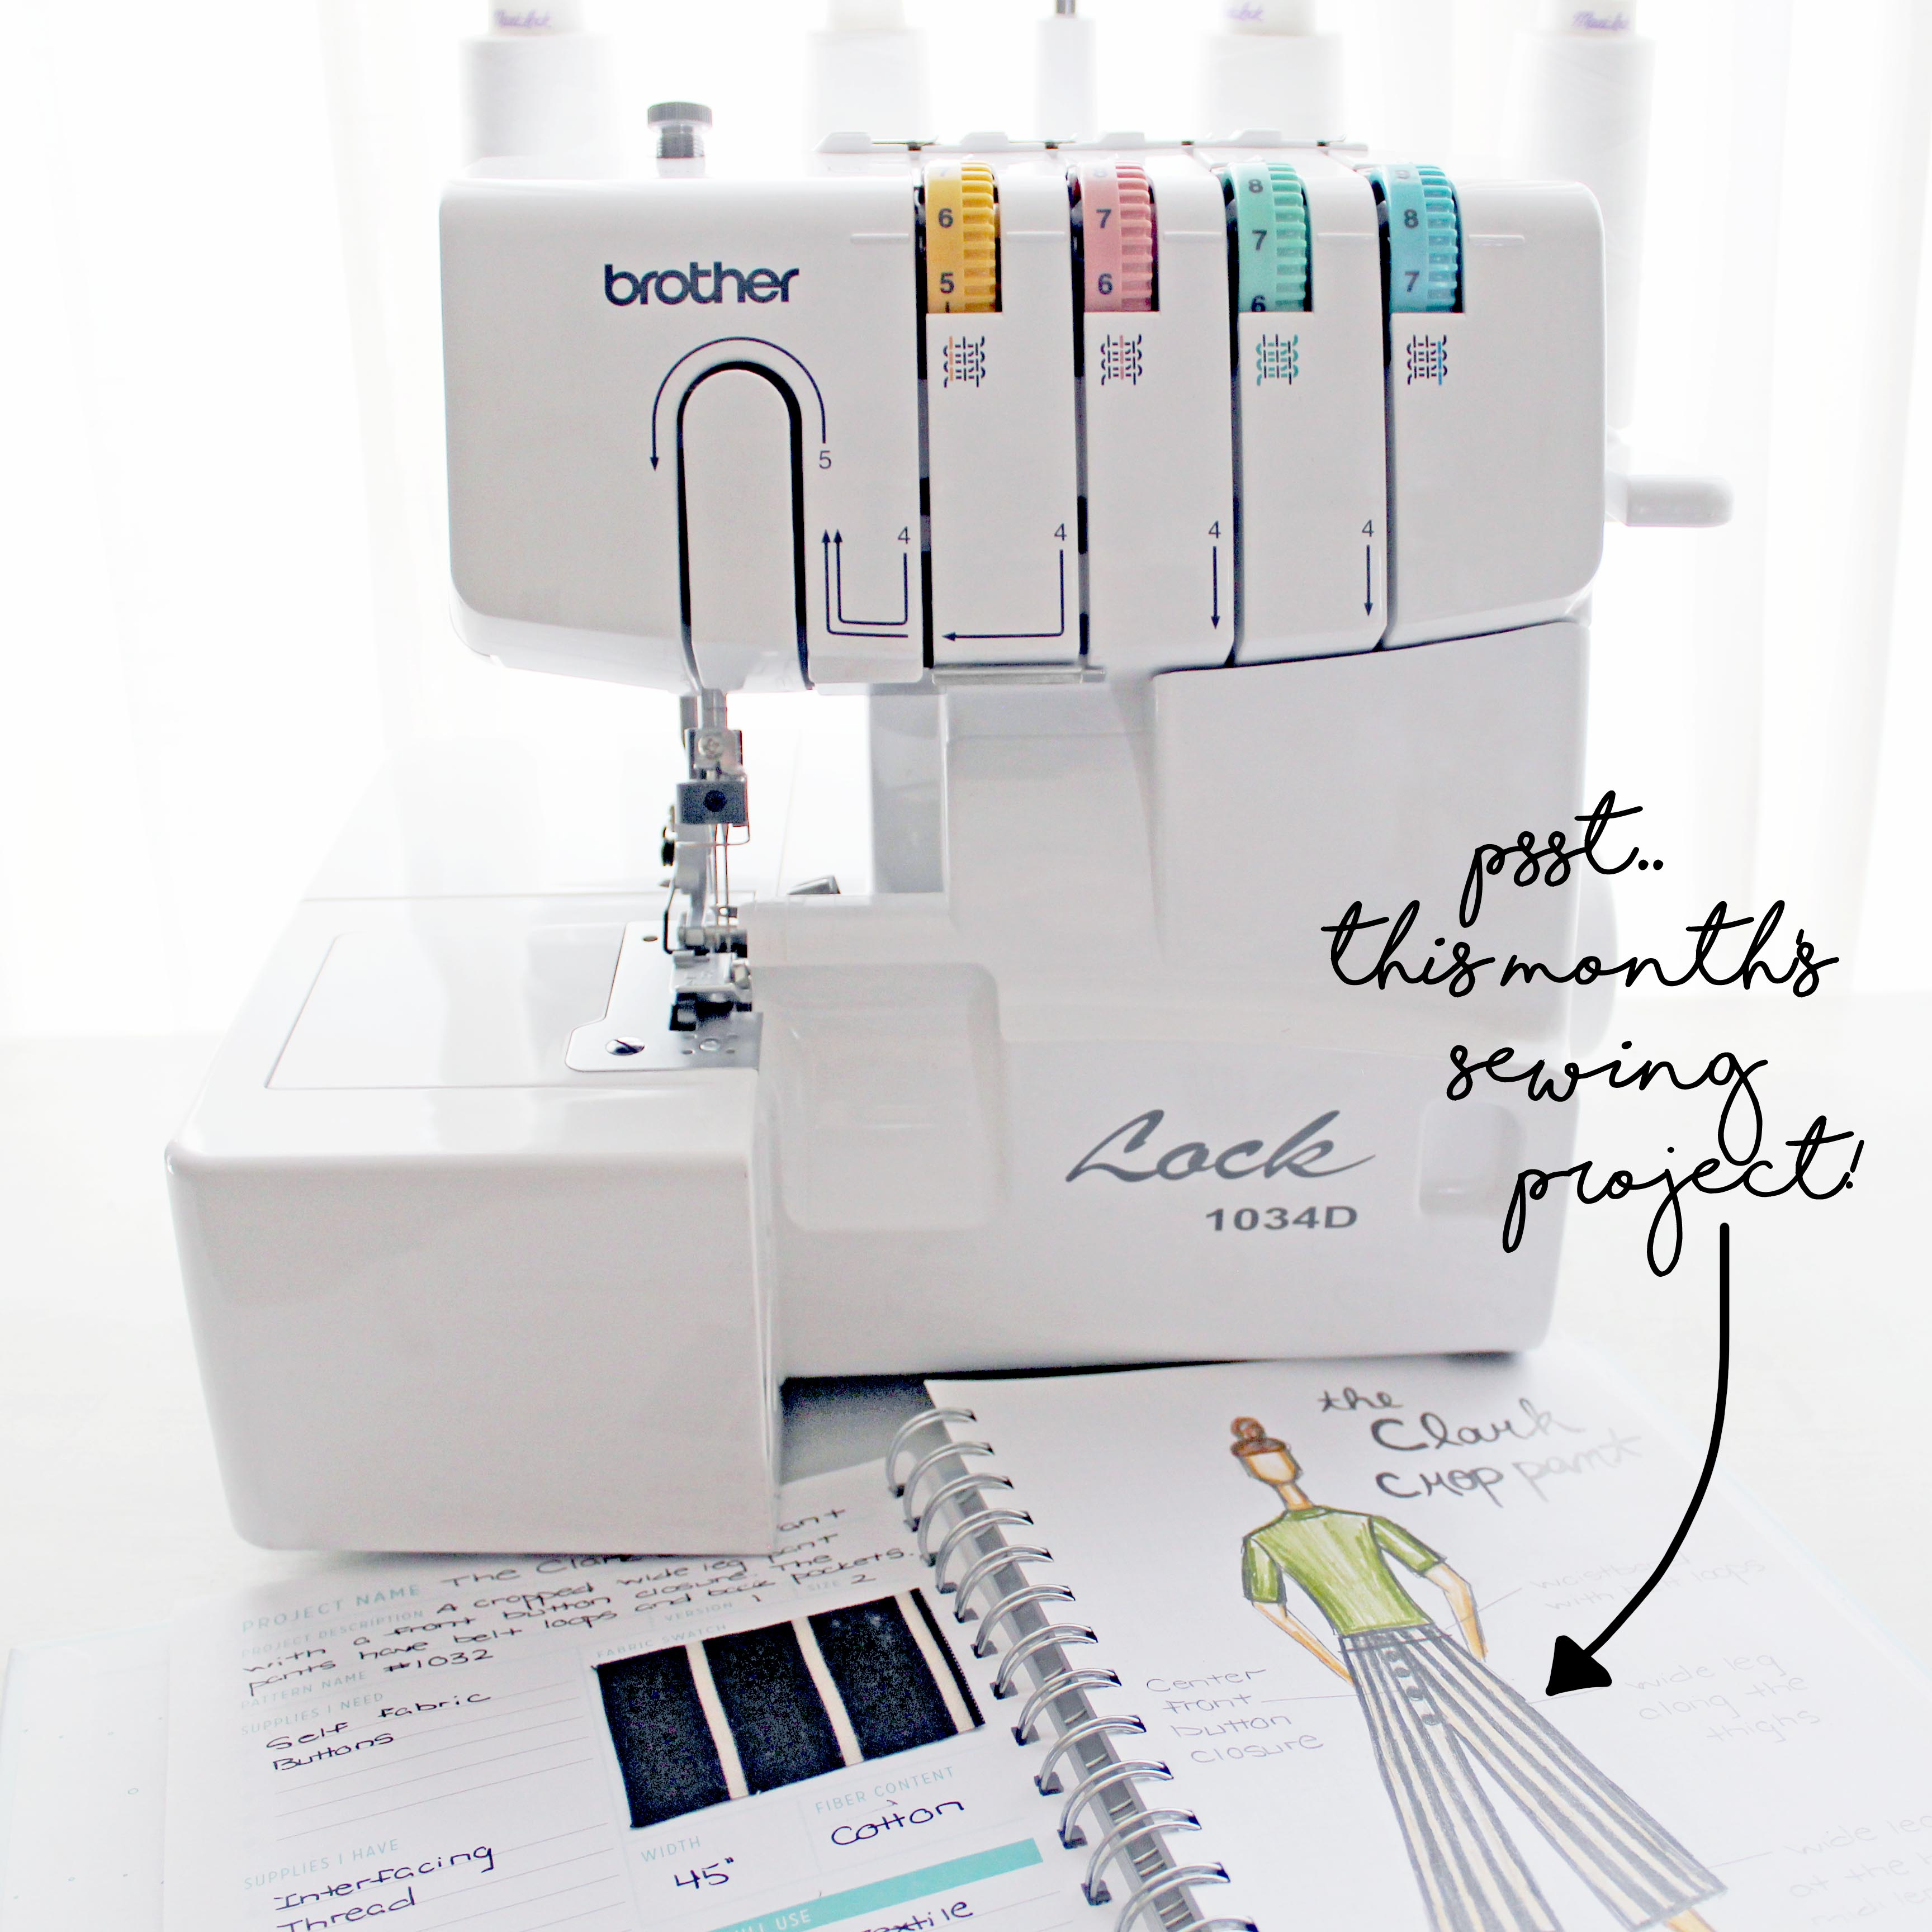 Brother 1034D Serger Machine & Sewing Project